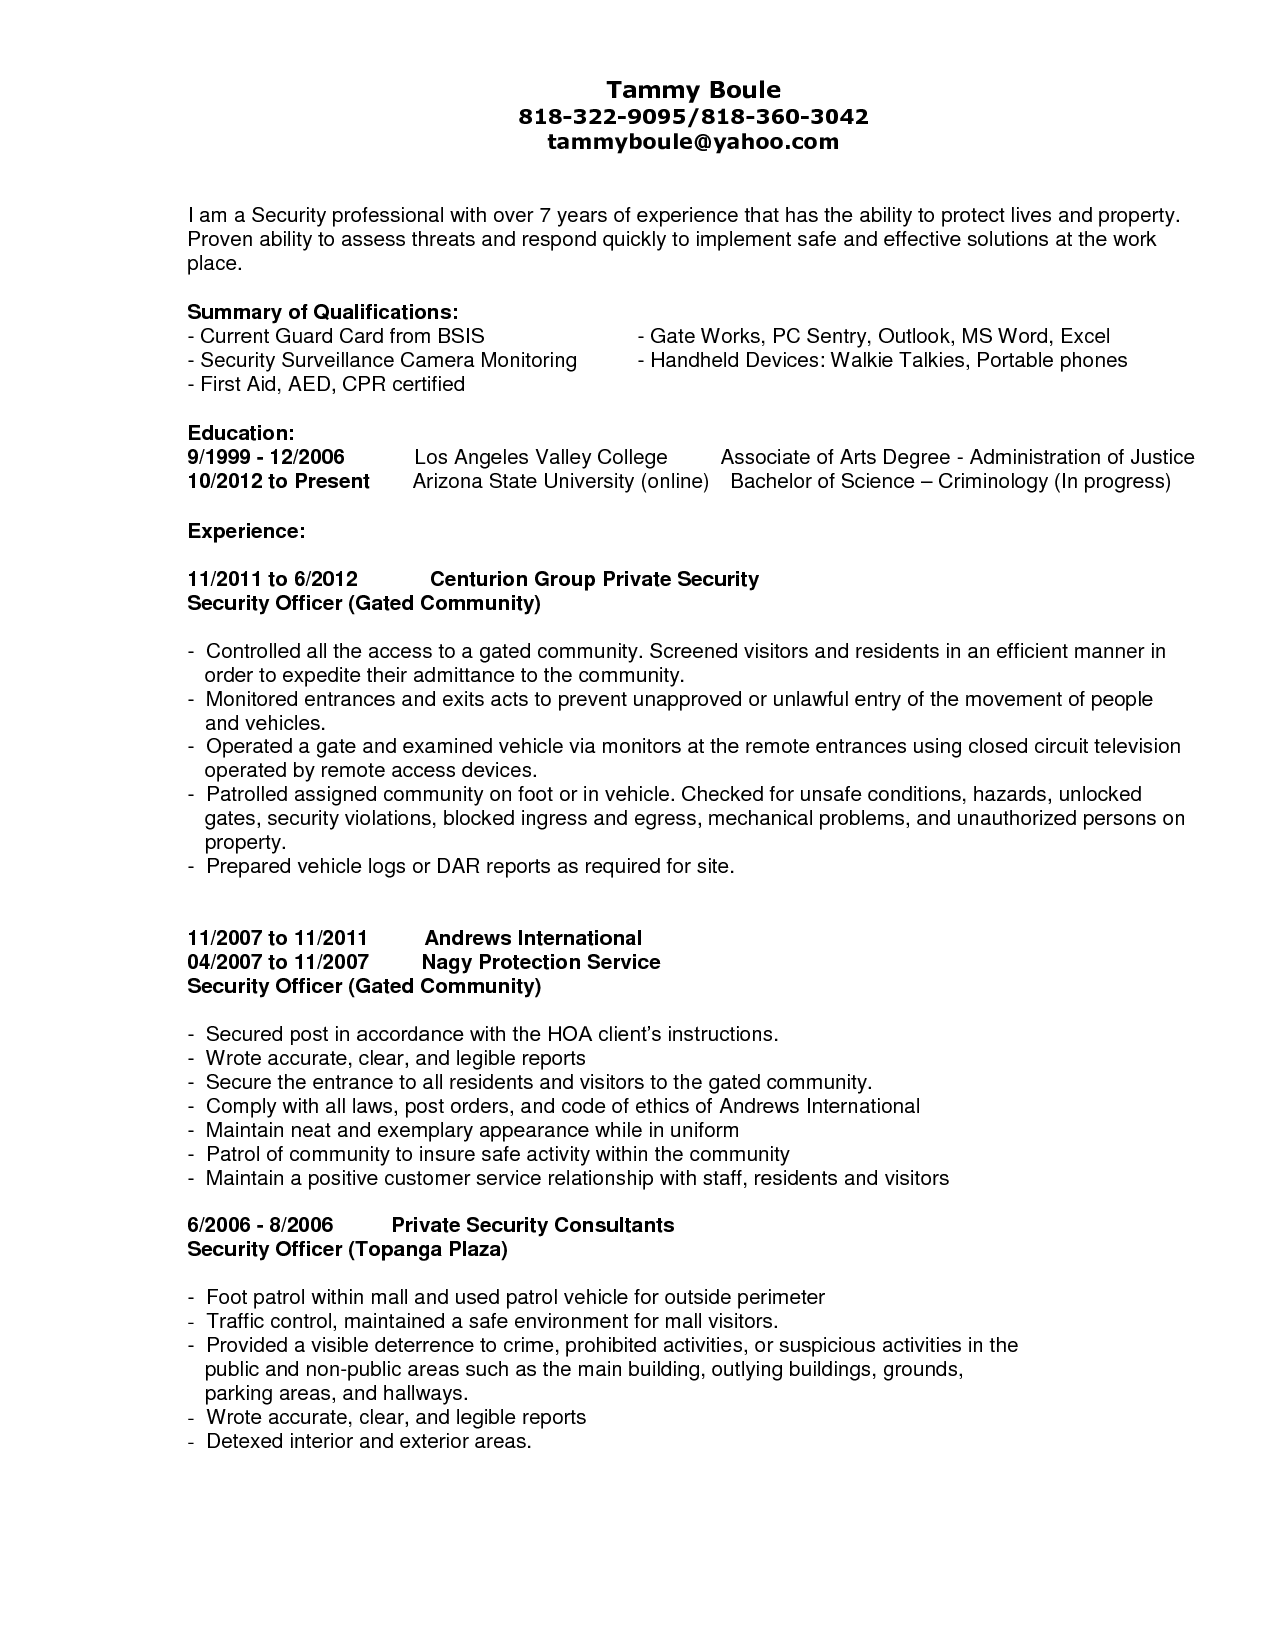 Security Officer Resume Samples Guard Security Officer Resume Ideas Http Jobresume